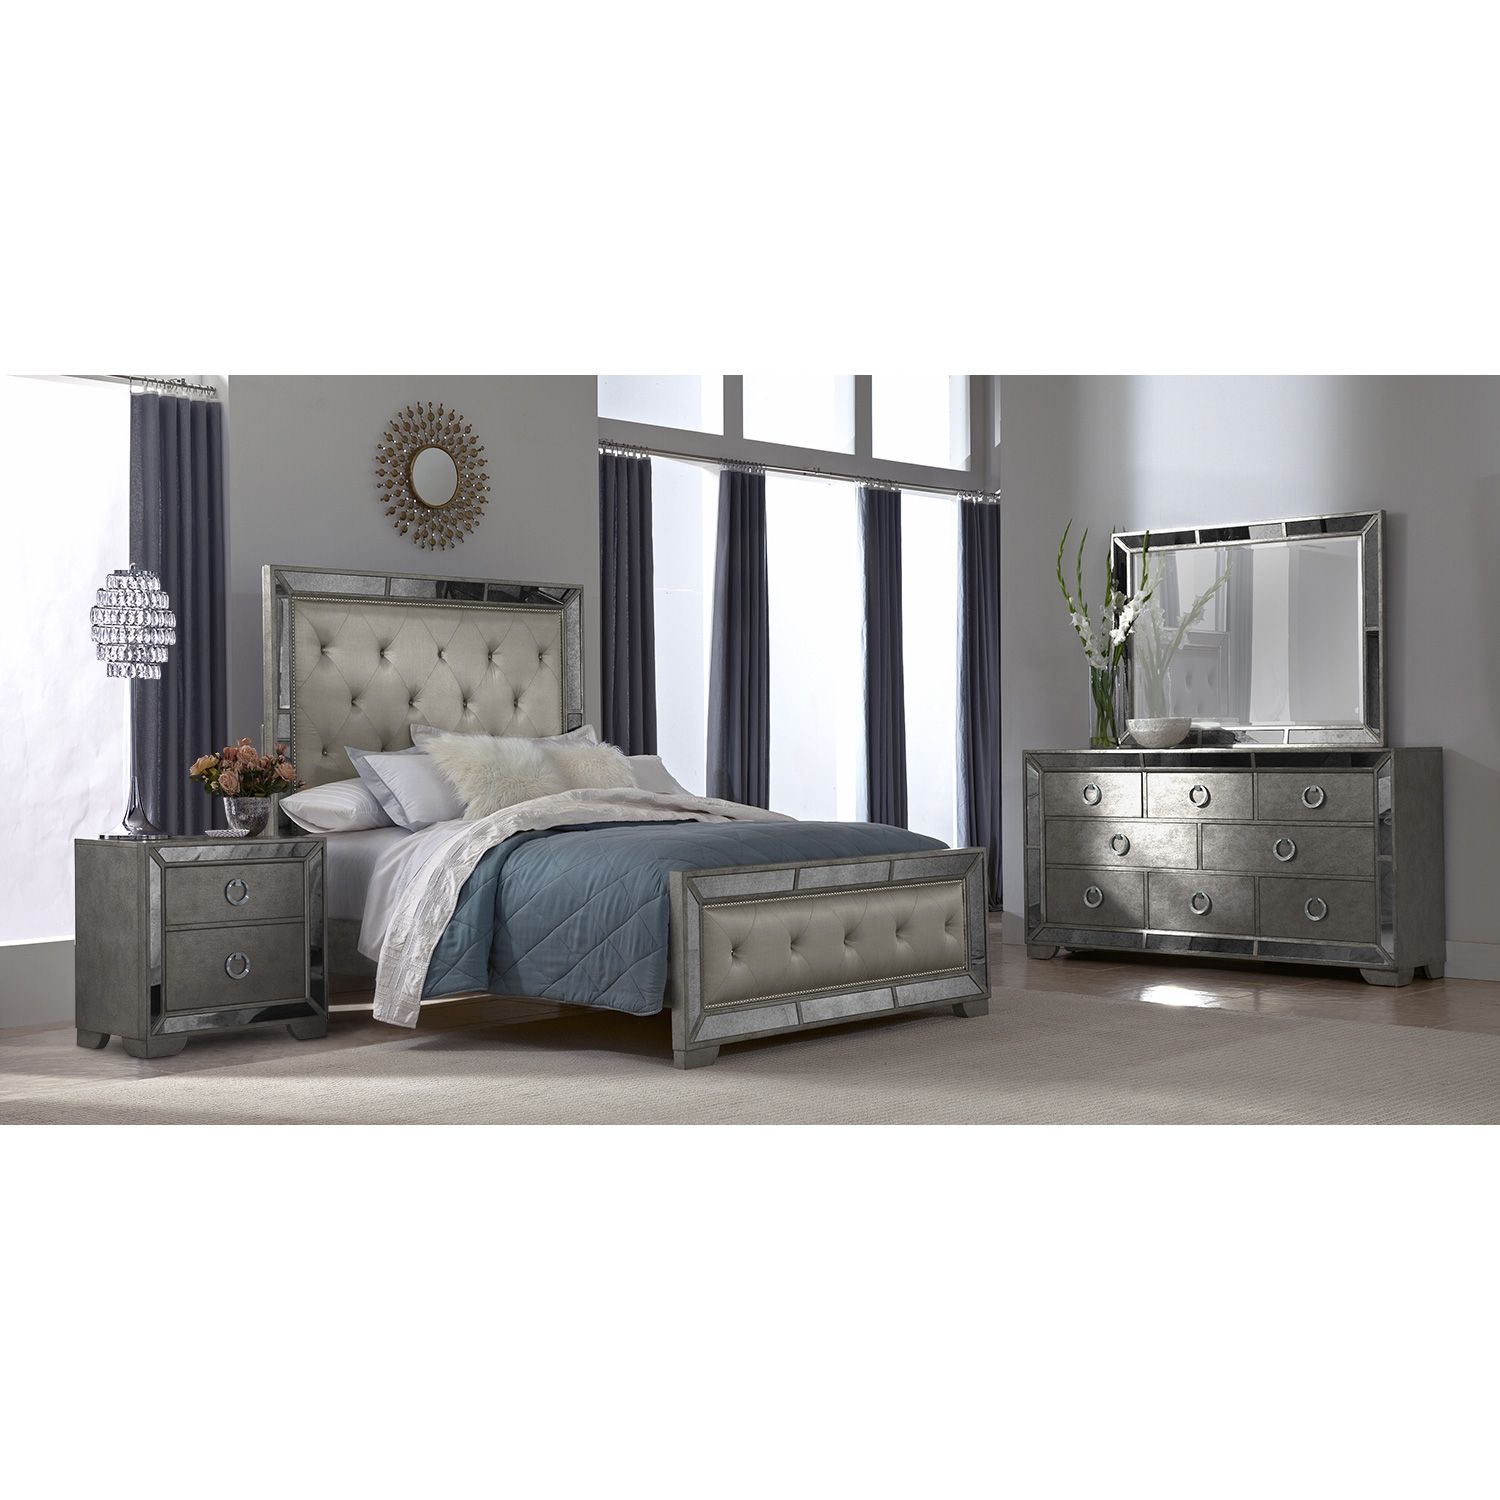 Angelina 6 Pc King Bedroom American Signature Furniture Home Decor Inspiration Pinterest